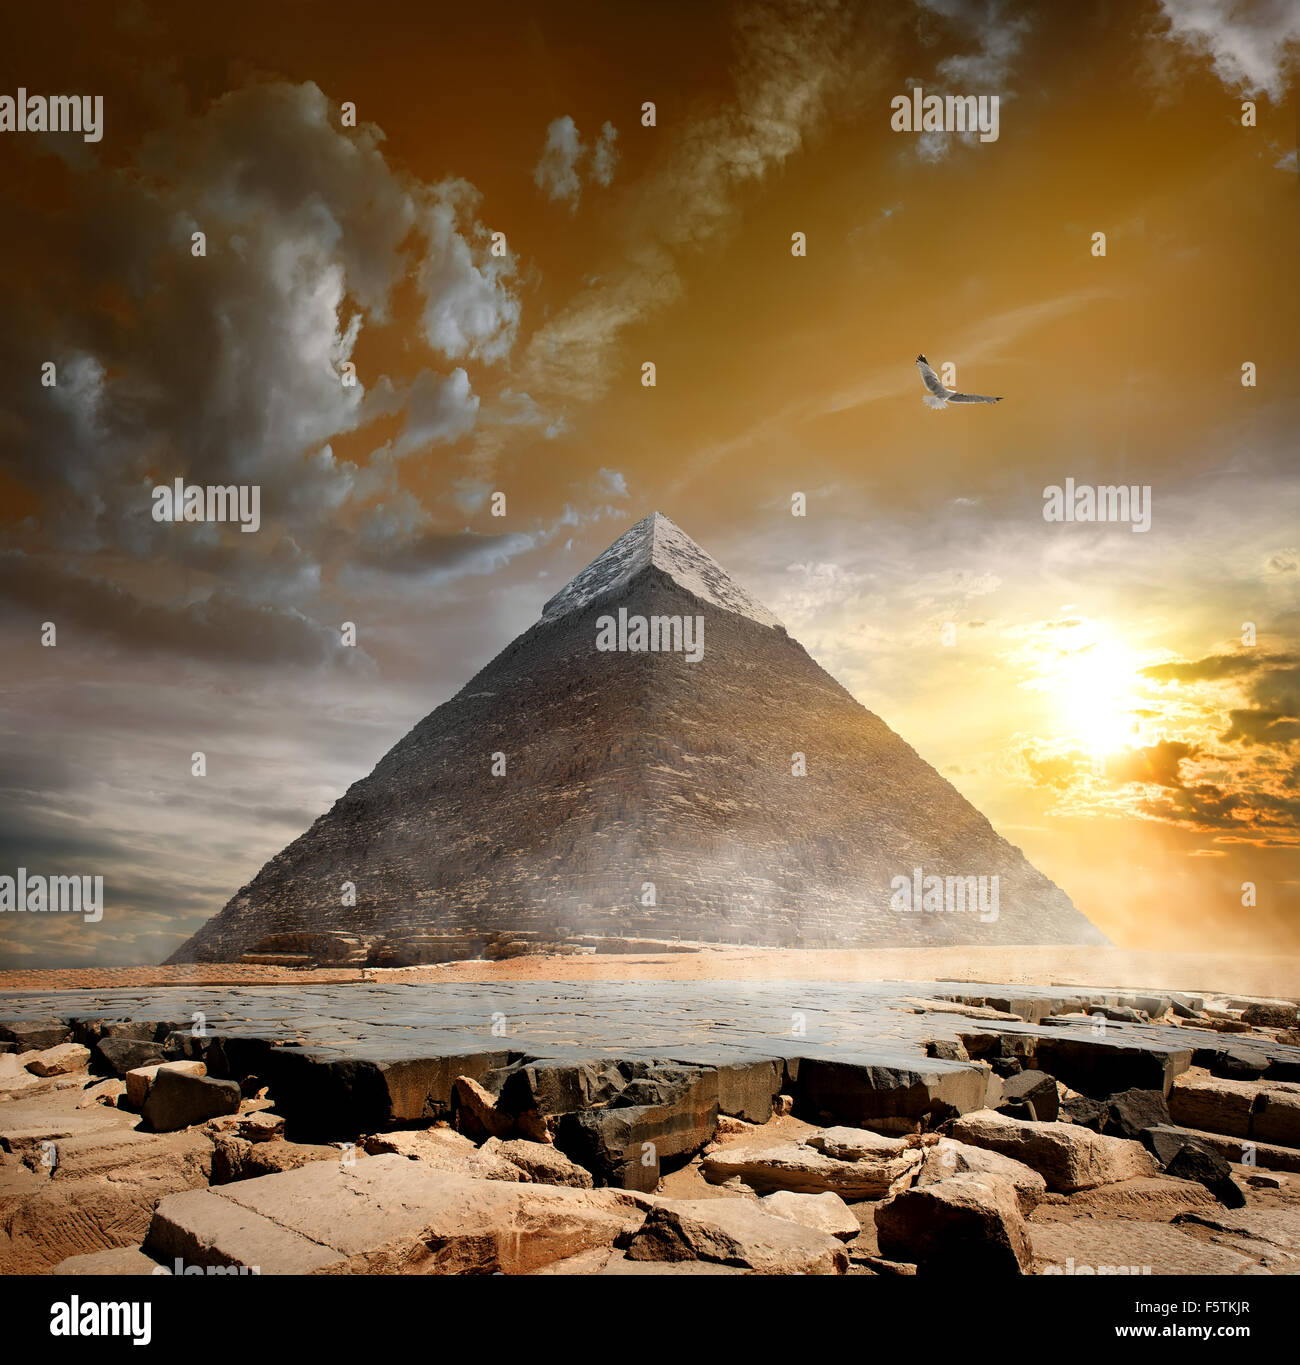 Pyramid of Khafre under storm clouds at sunset - Stock Image